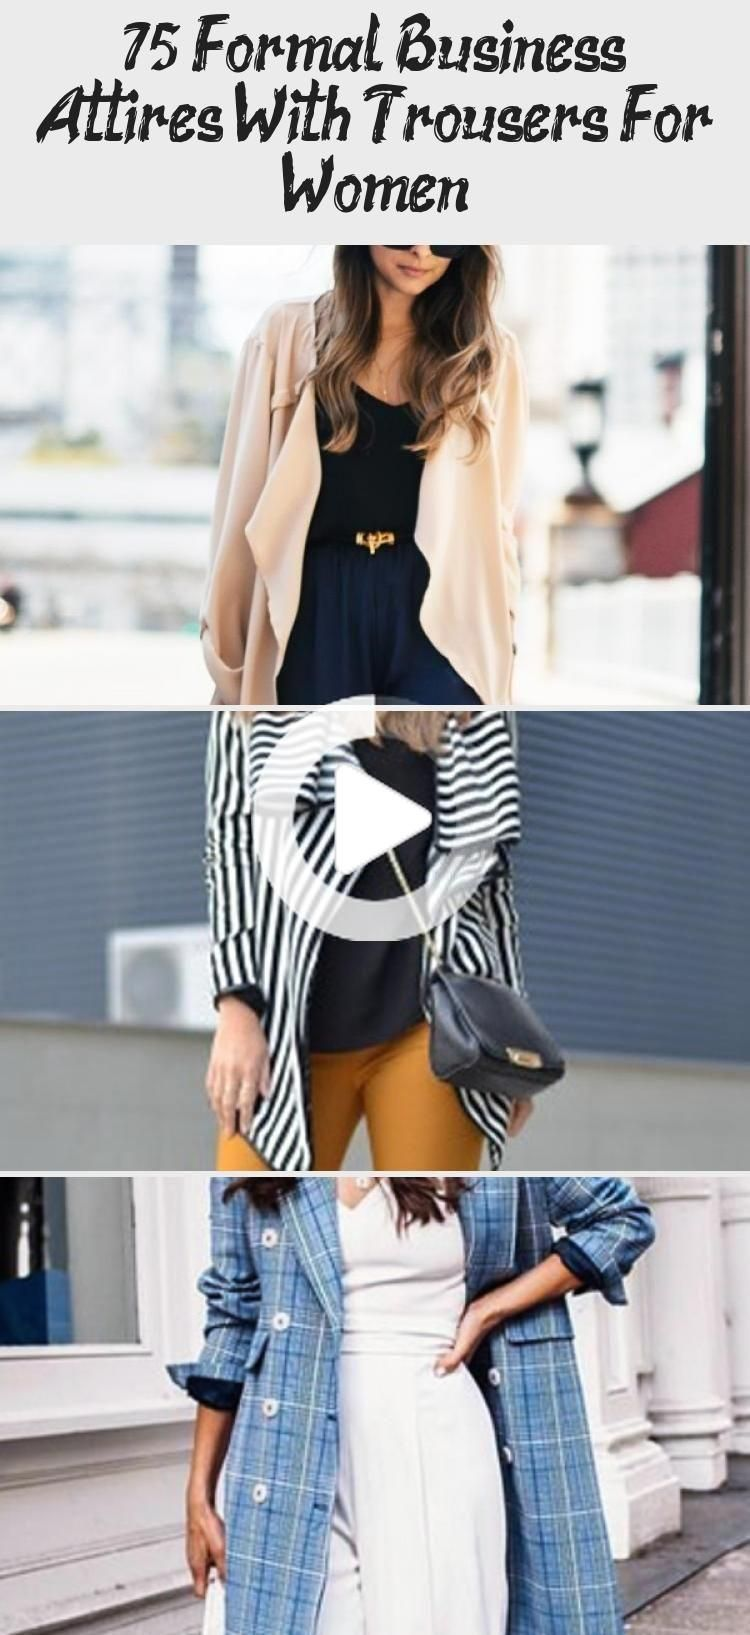 75 formal business wear with Trousers for women - Gala Mode, Street Style, ... #businessattireforyoungwomen